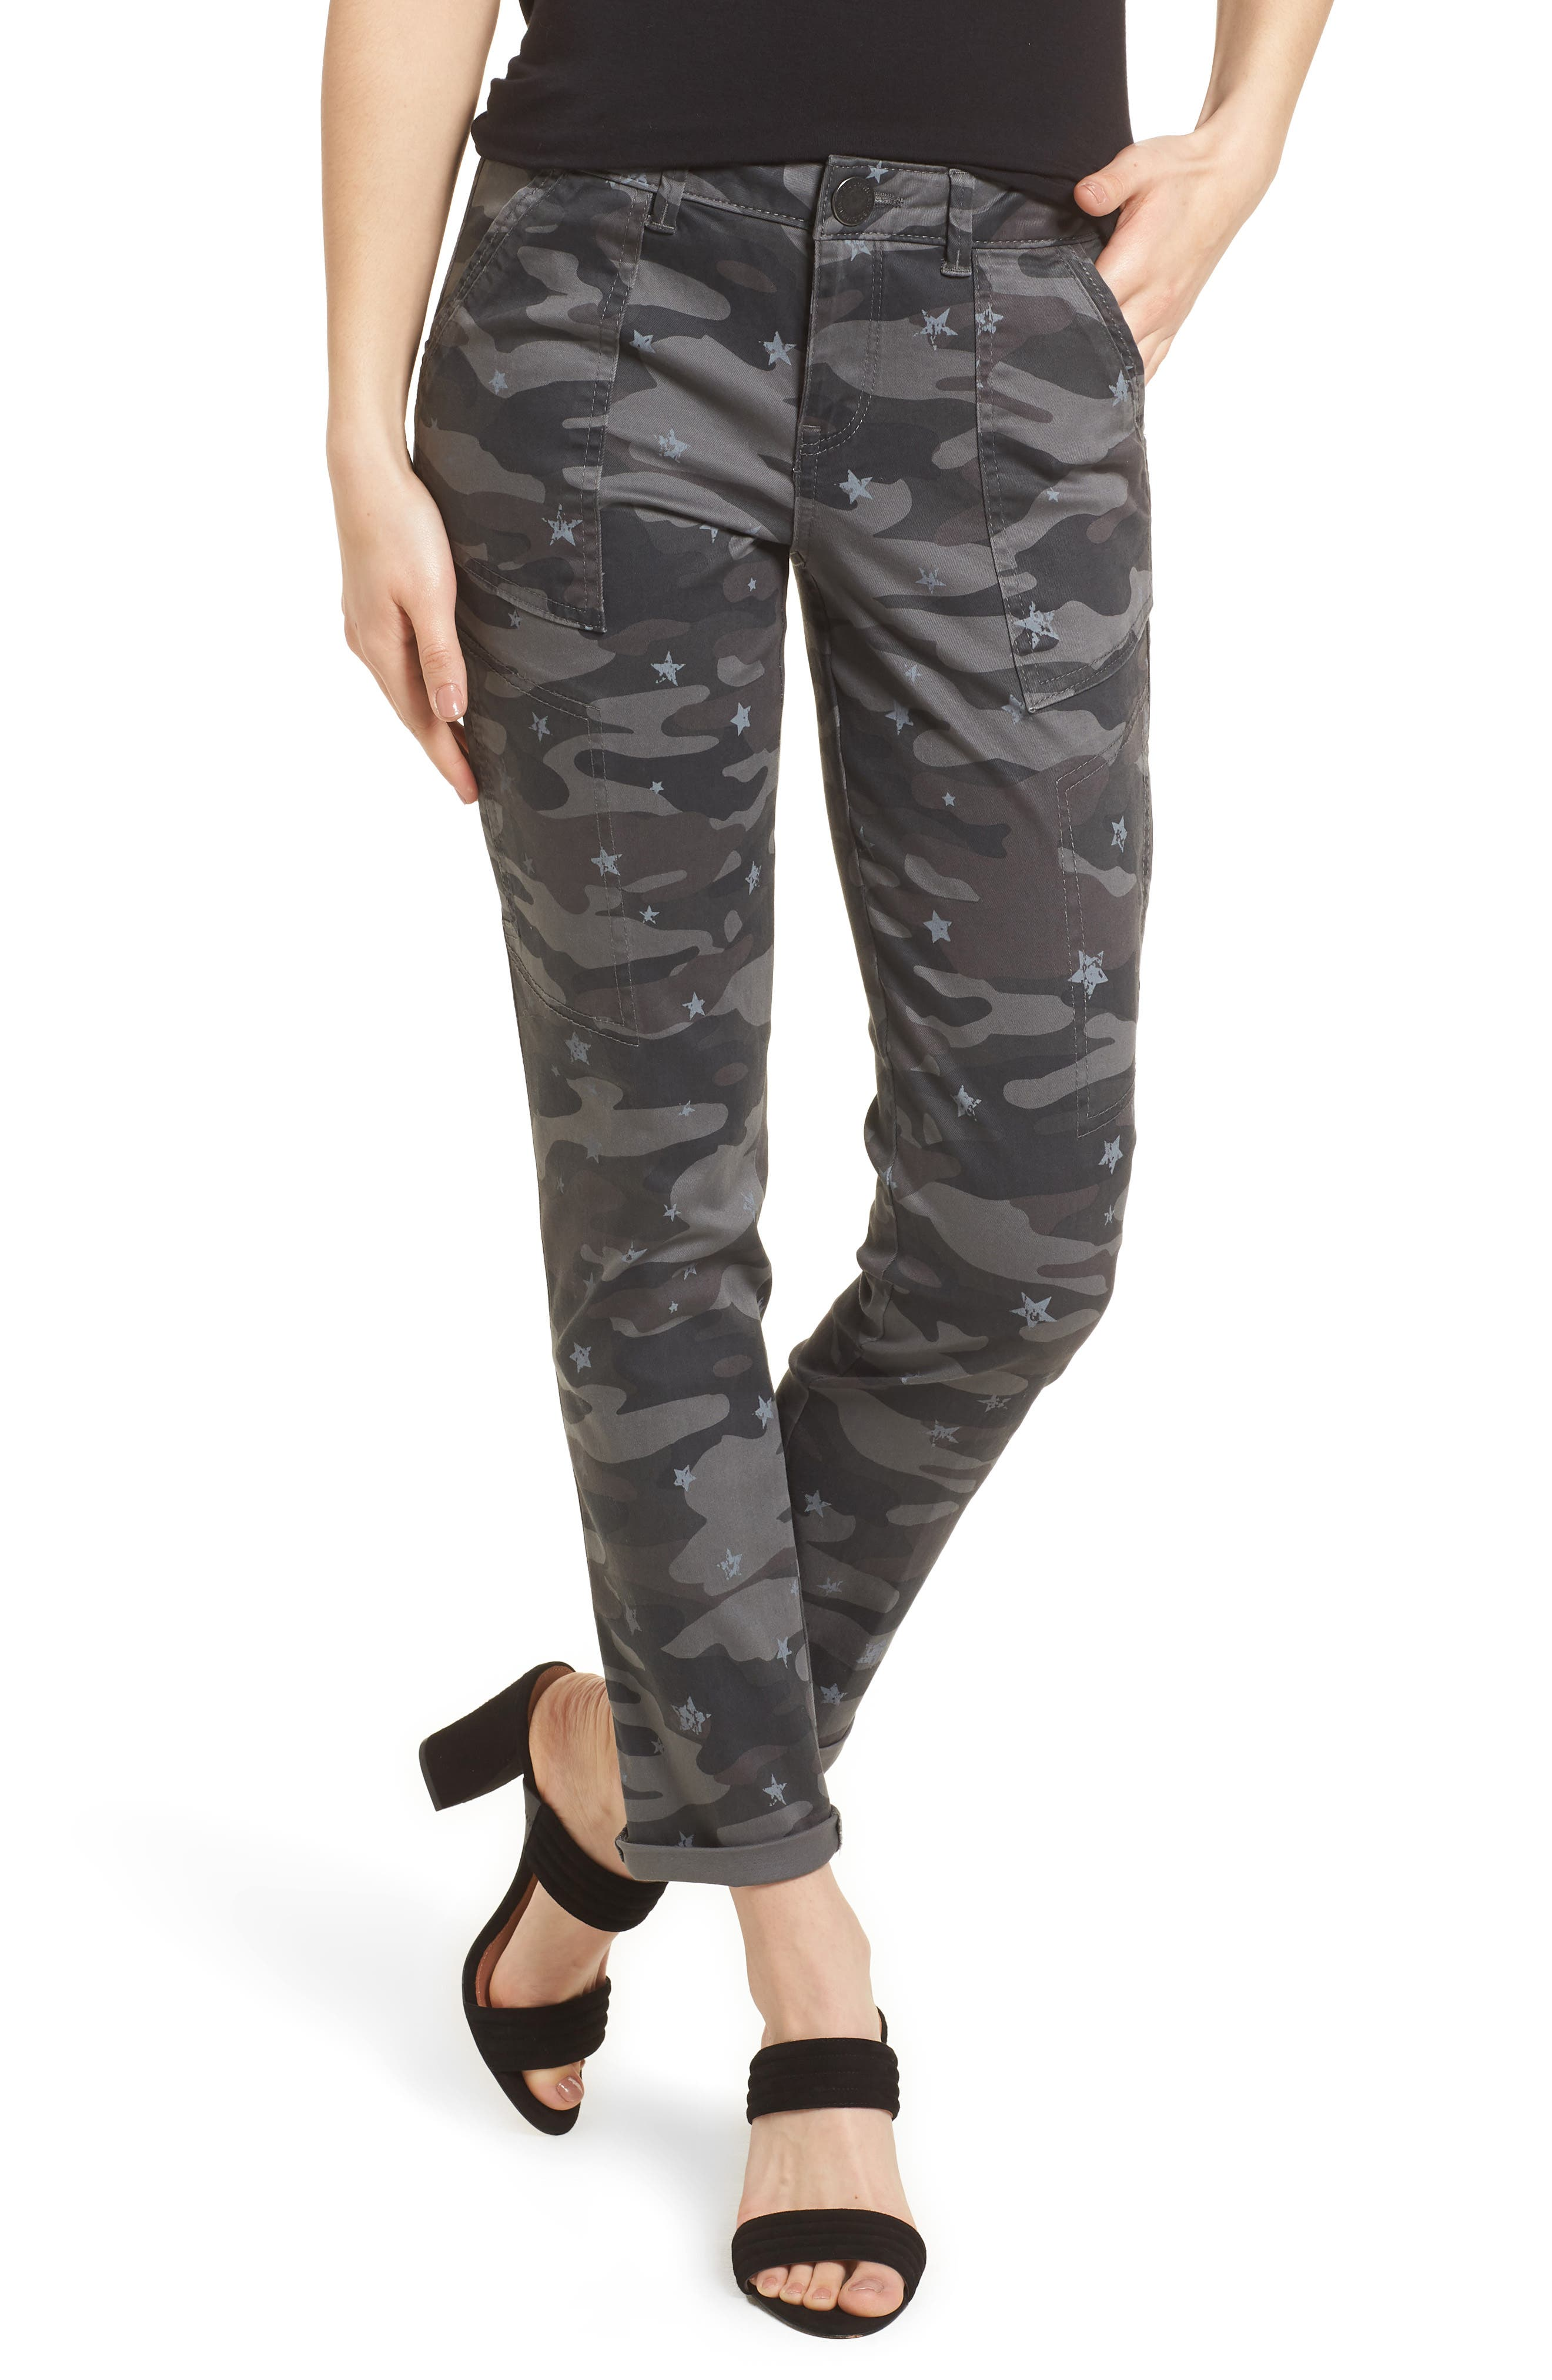 Twill Star Camo Cargo Pants,                         Main,                         color, Cc- Charcoal